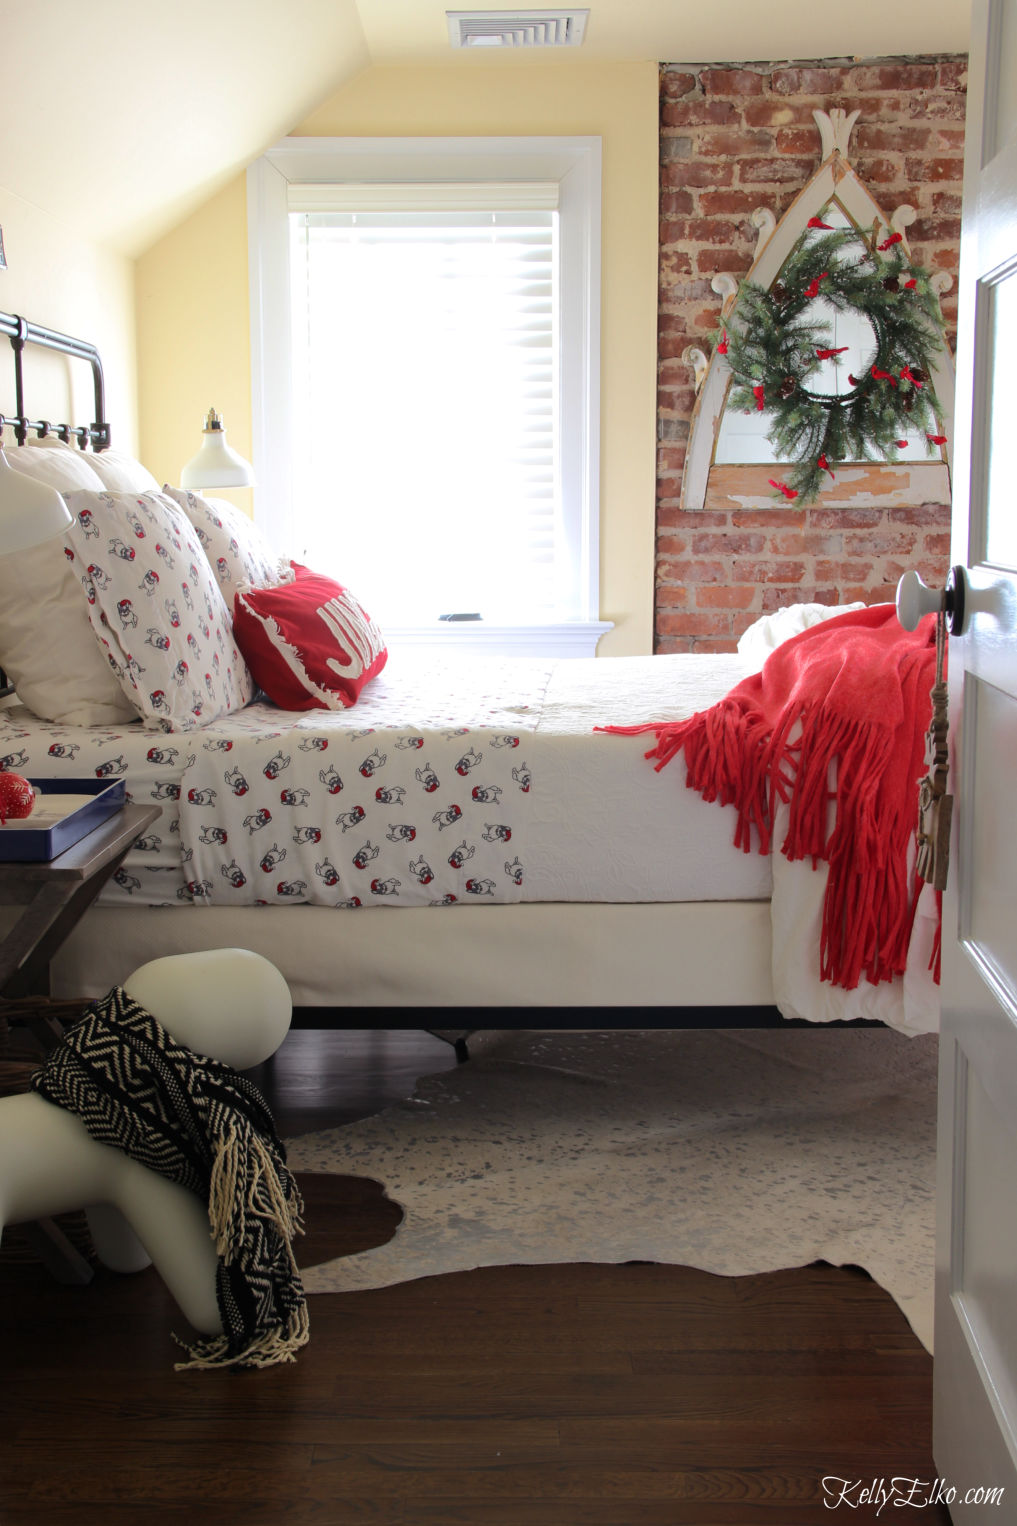 Cozy Christmas Guest Bedroom kellyelko.com #christmas #christmasdecor #christmasdecorations #christmasbedroom #guestbedroom #christmaswreath #christmasbedding